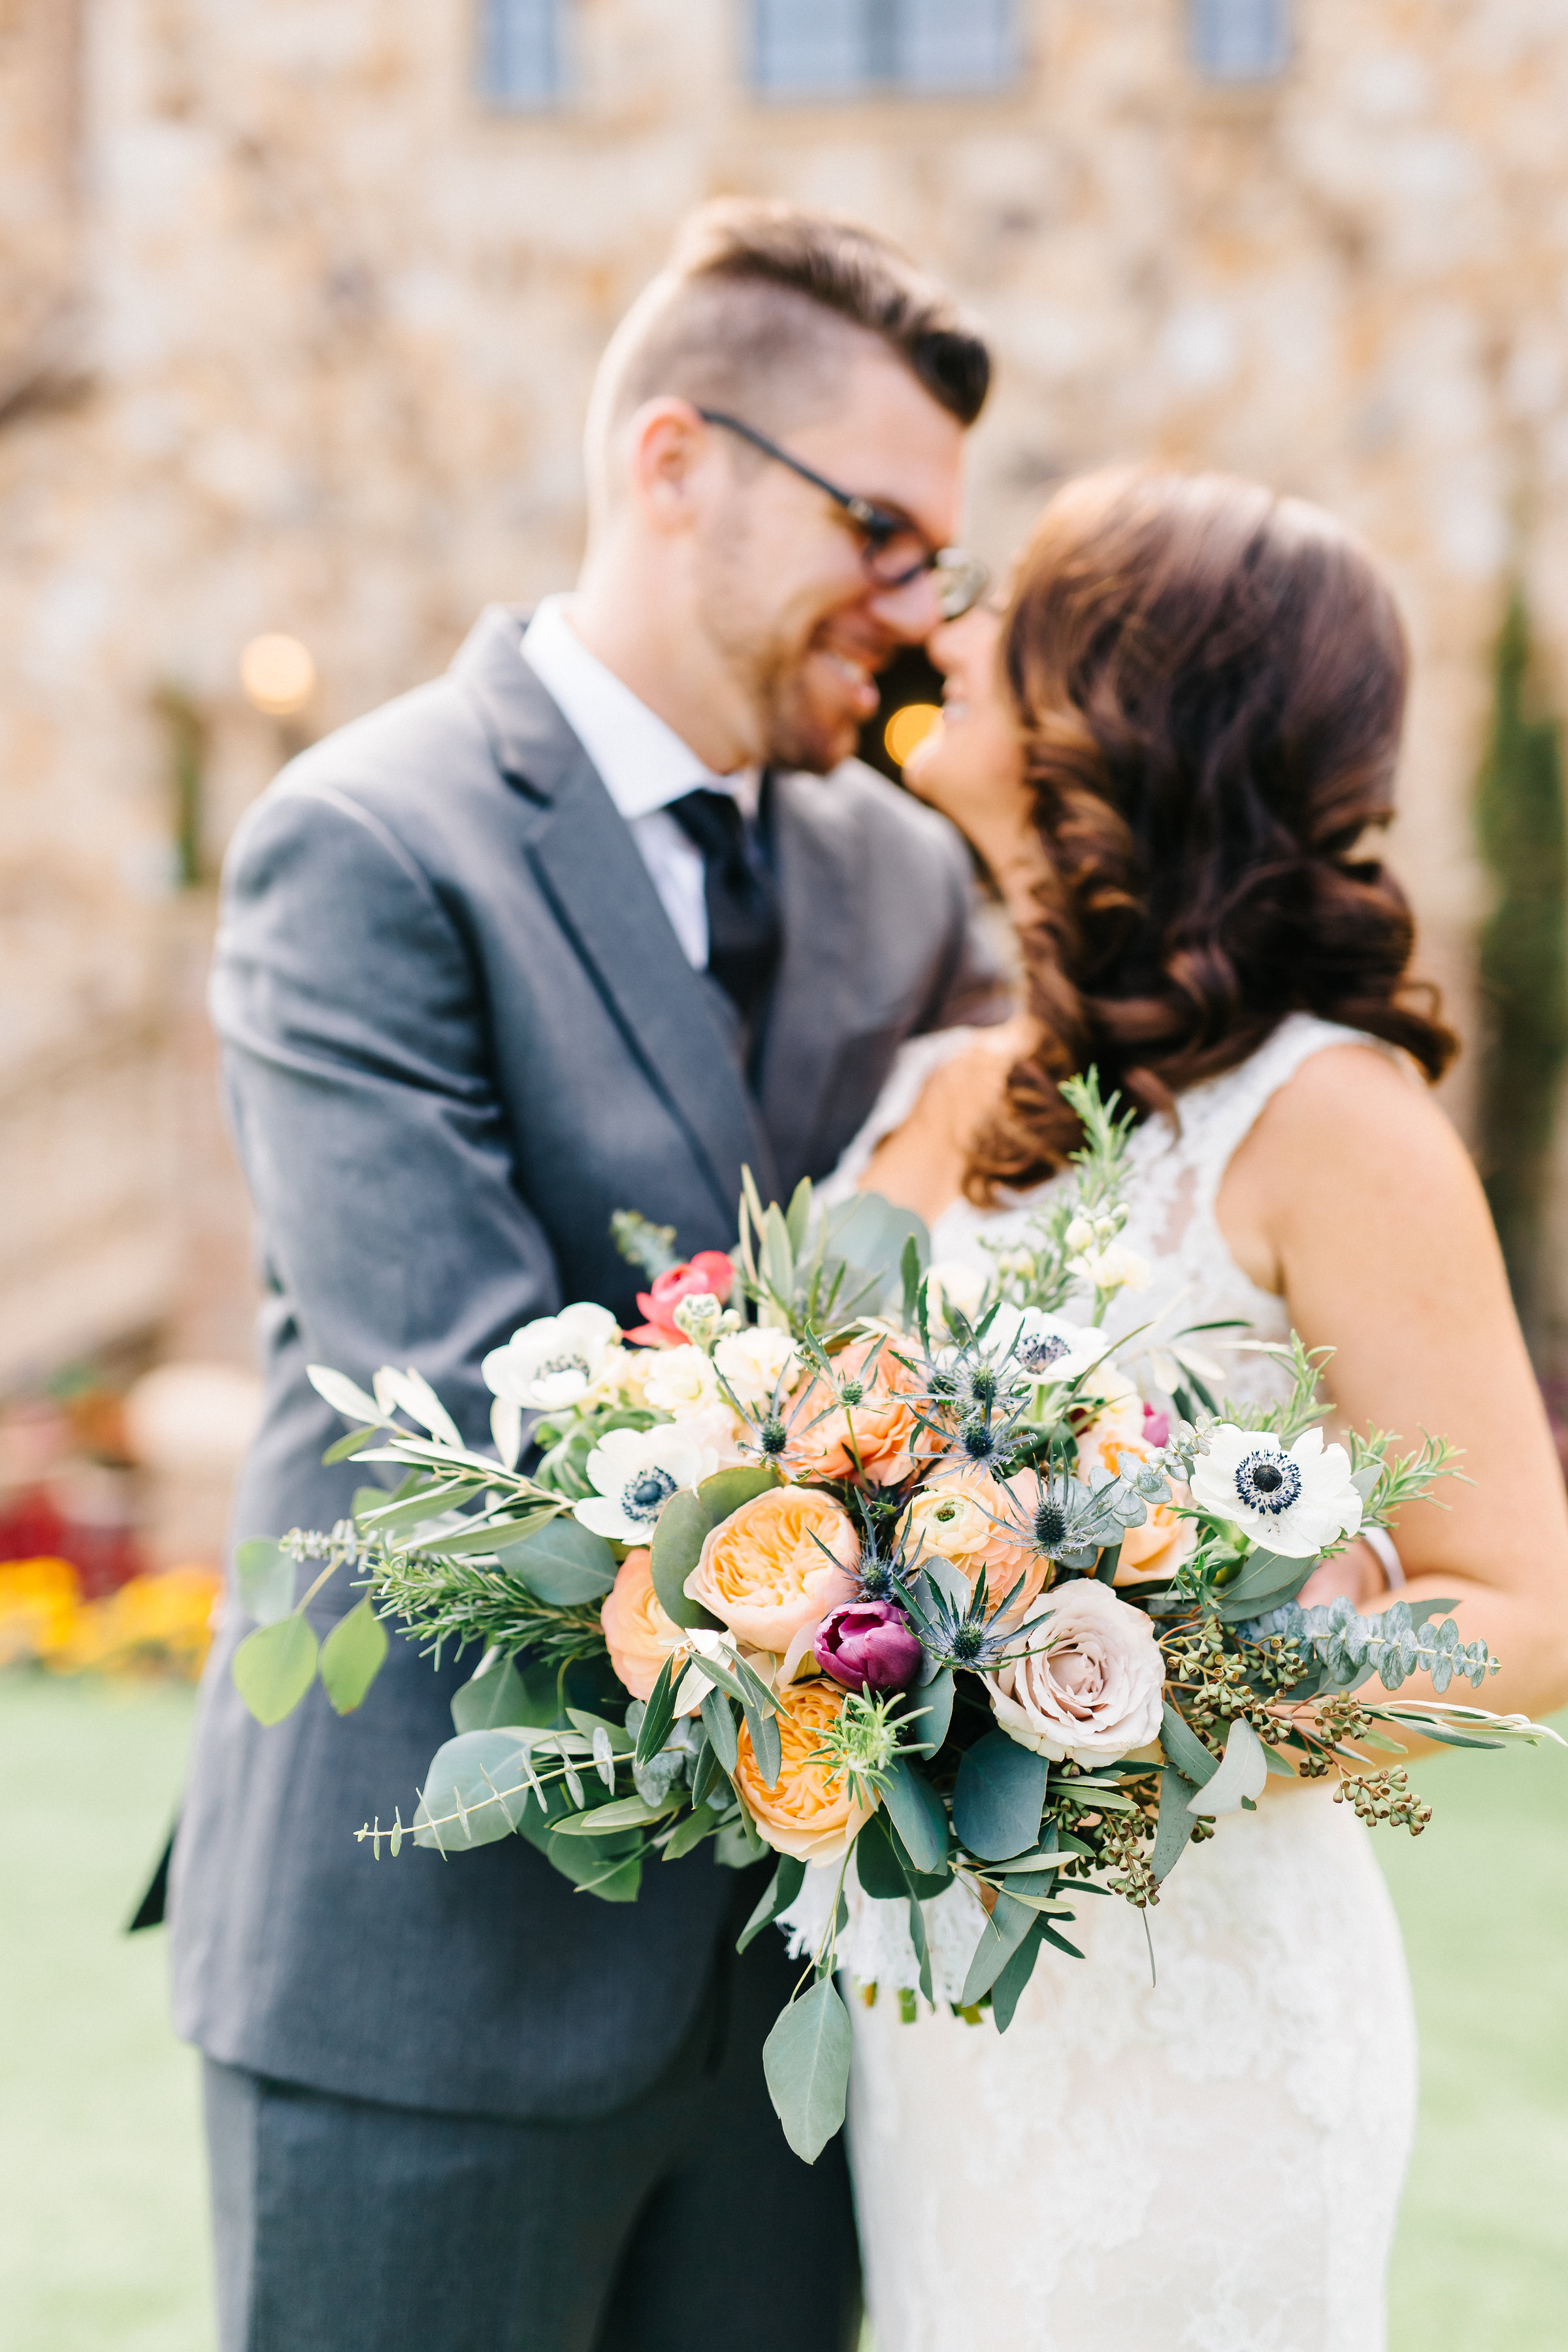 Bridal bouquet with anemones, garden roses, eucalyptus and olive leaf  Orlando Wedding Planner Blue Ribbon Weddings  Orlando Wedding Photographer Emma Shourds Photography  Wedding Ceremony at Bell Tower at Bella Collina  Wedding Reception in Atrium at Bella Collina